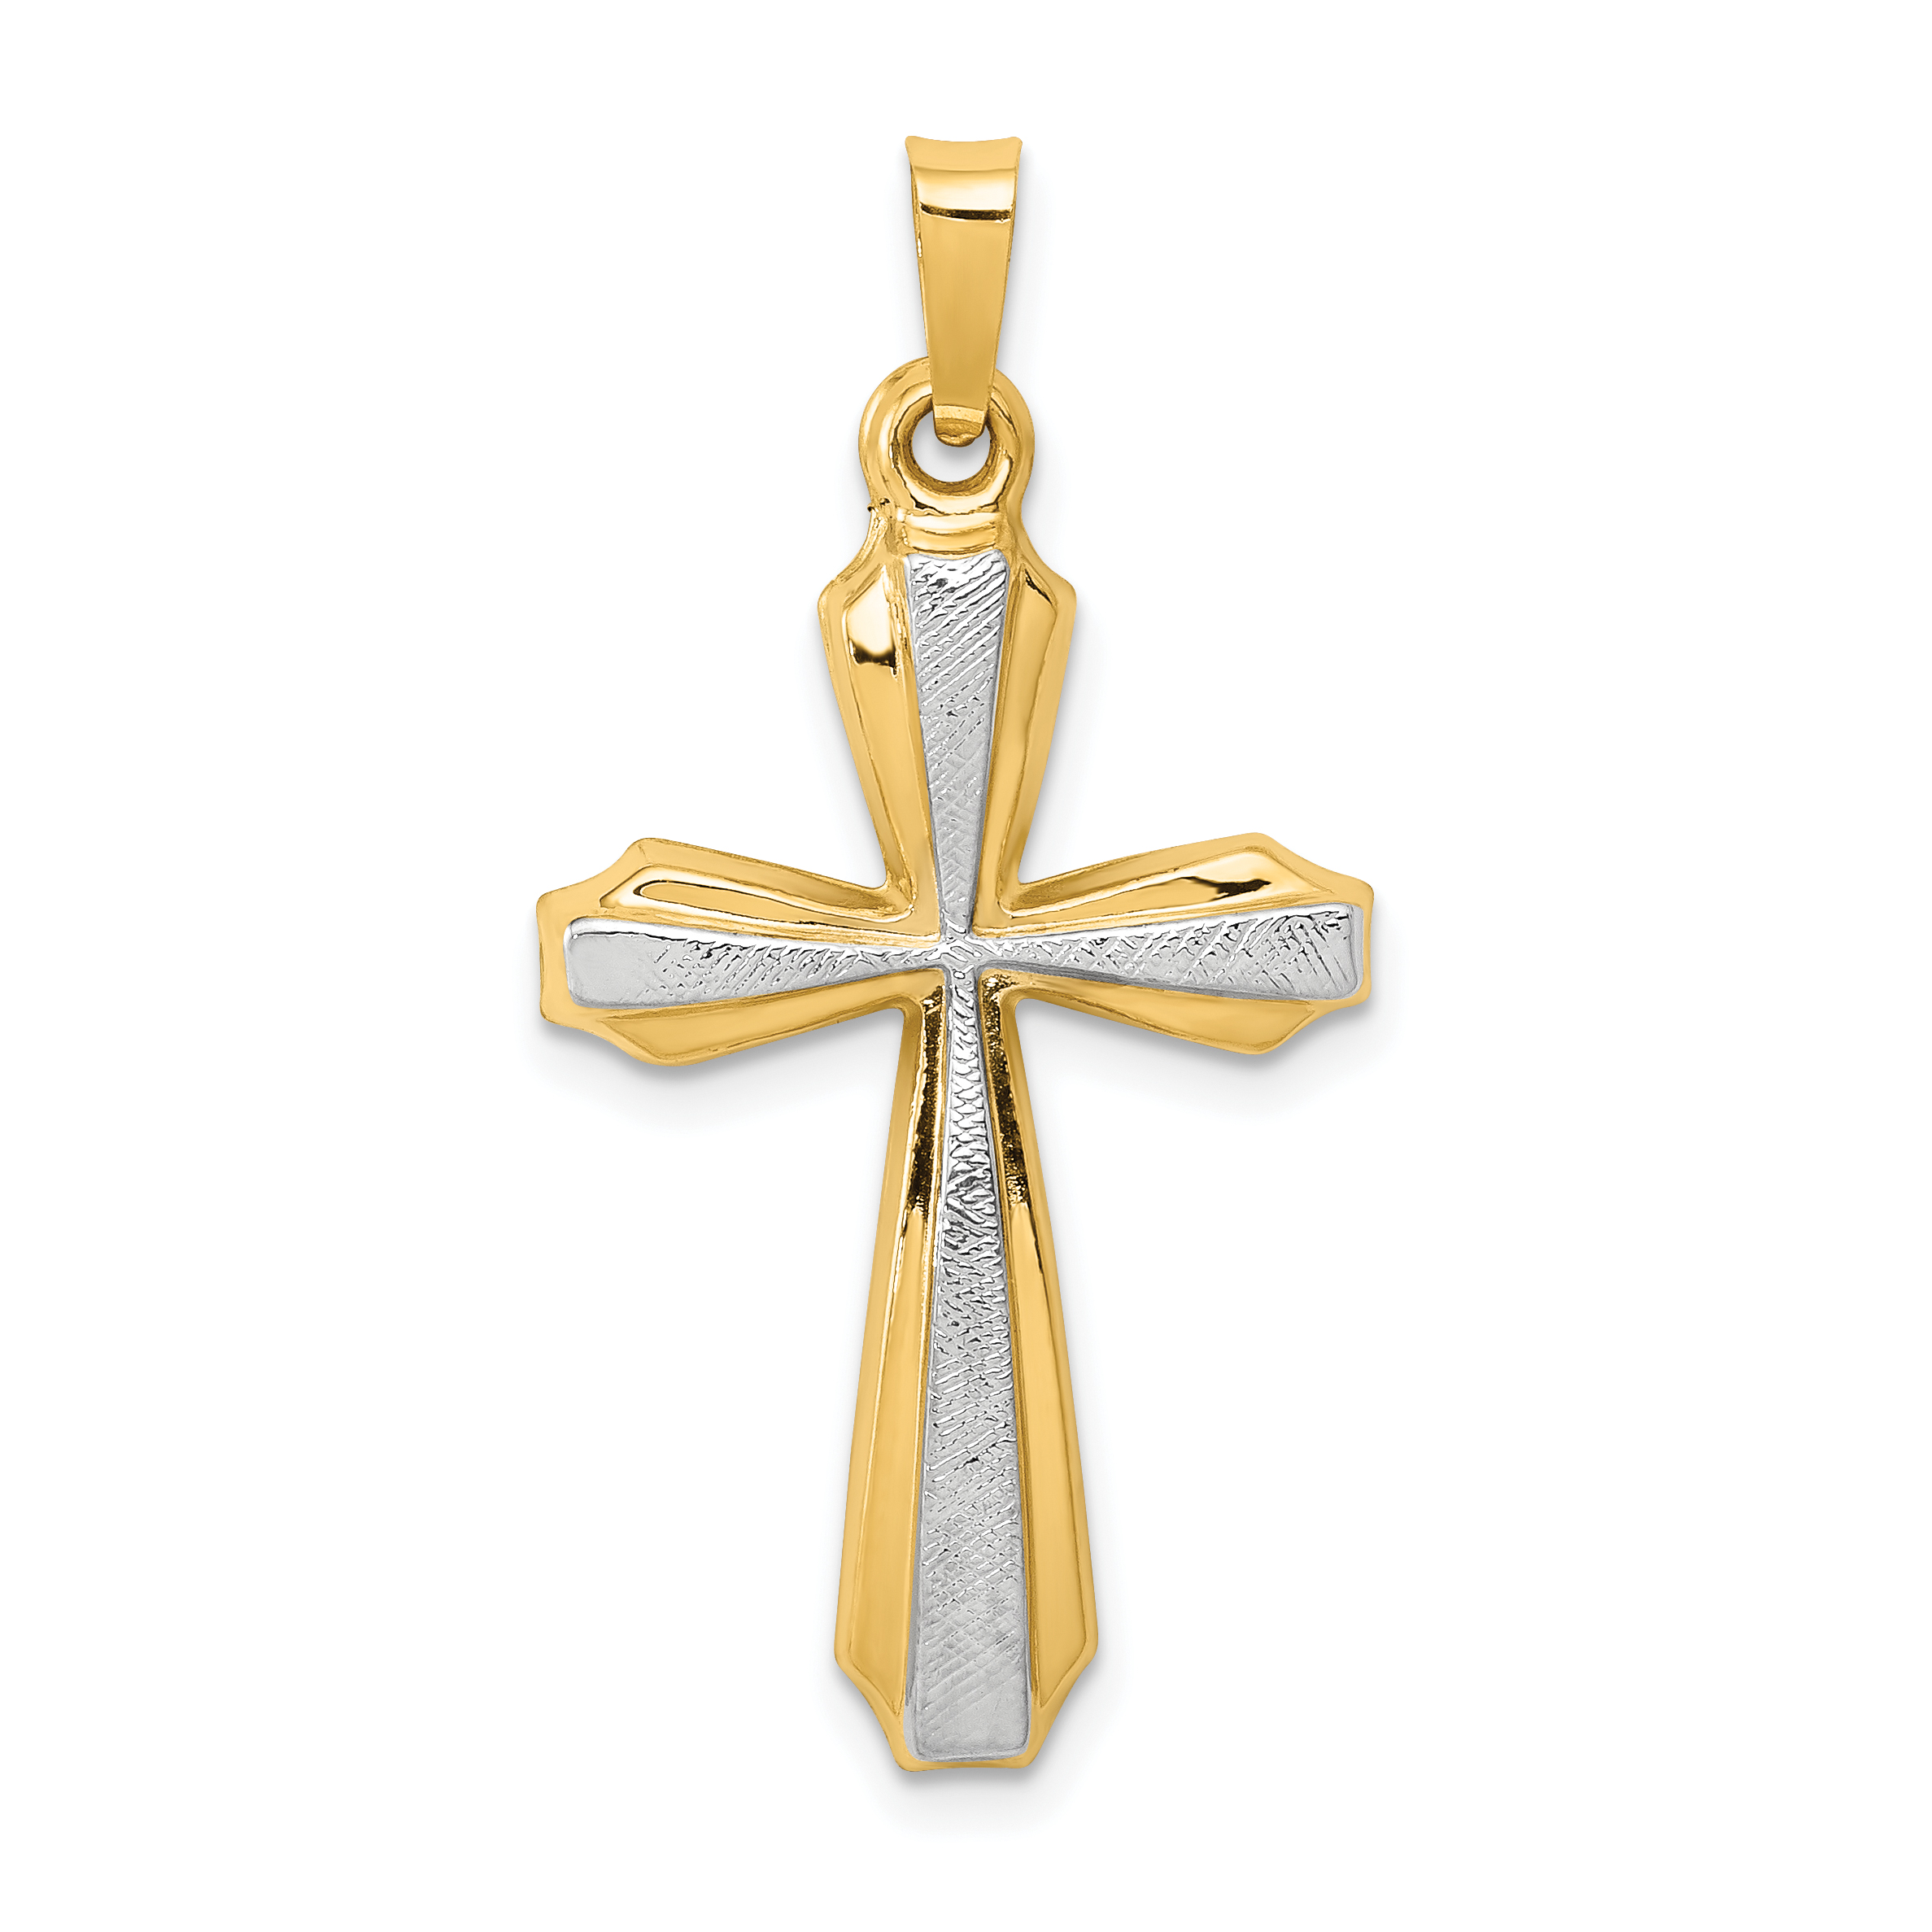 14k with rhodium textured and polished passion cross pendant weight 14k with rhodium textured and polished passion cross pendant weight 089 length width aloadofball Choice Image